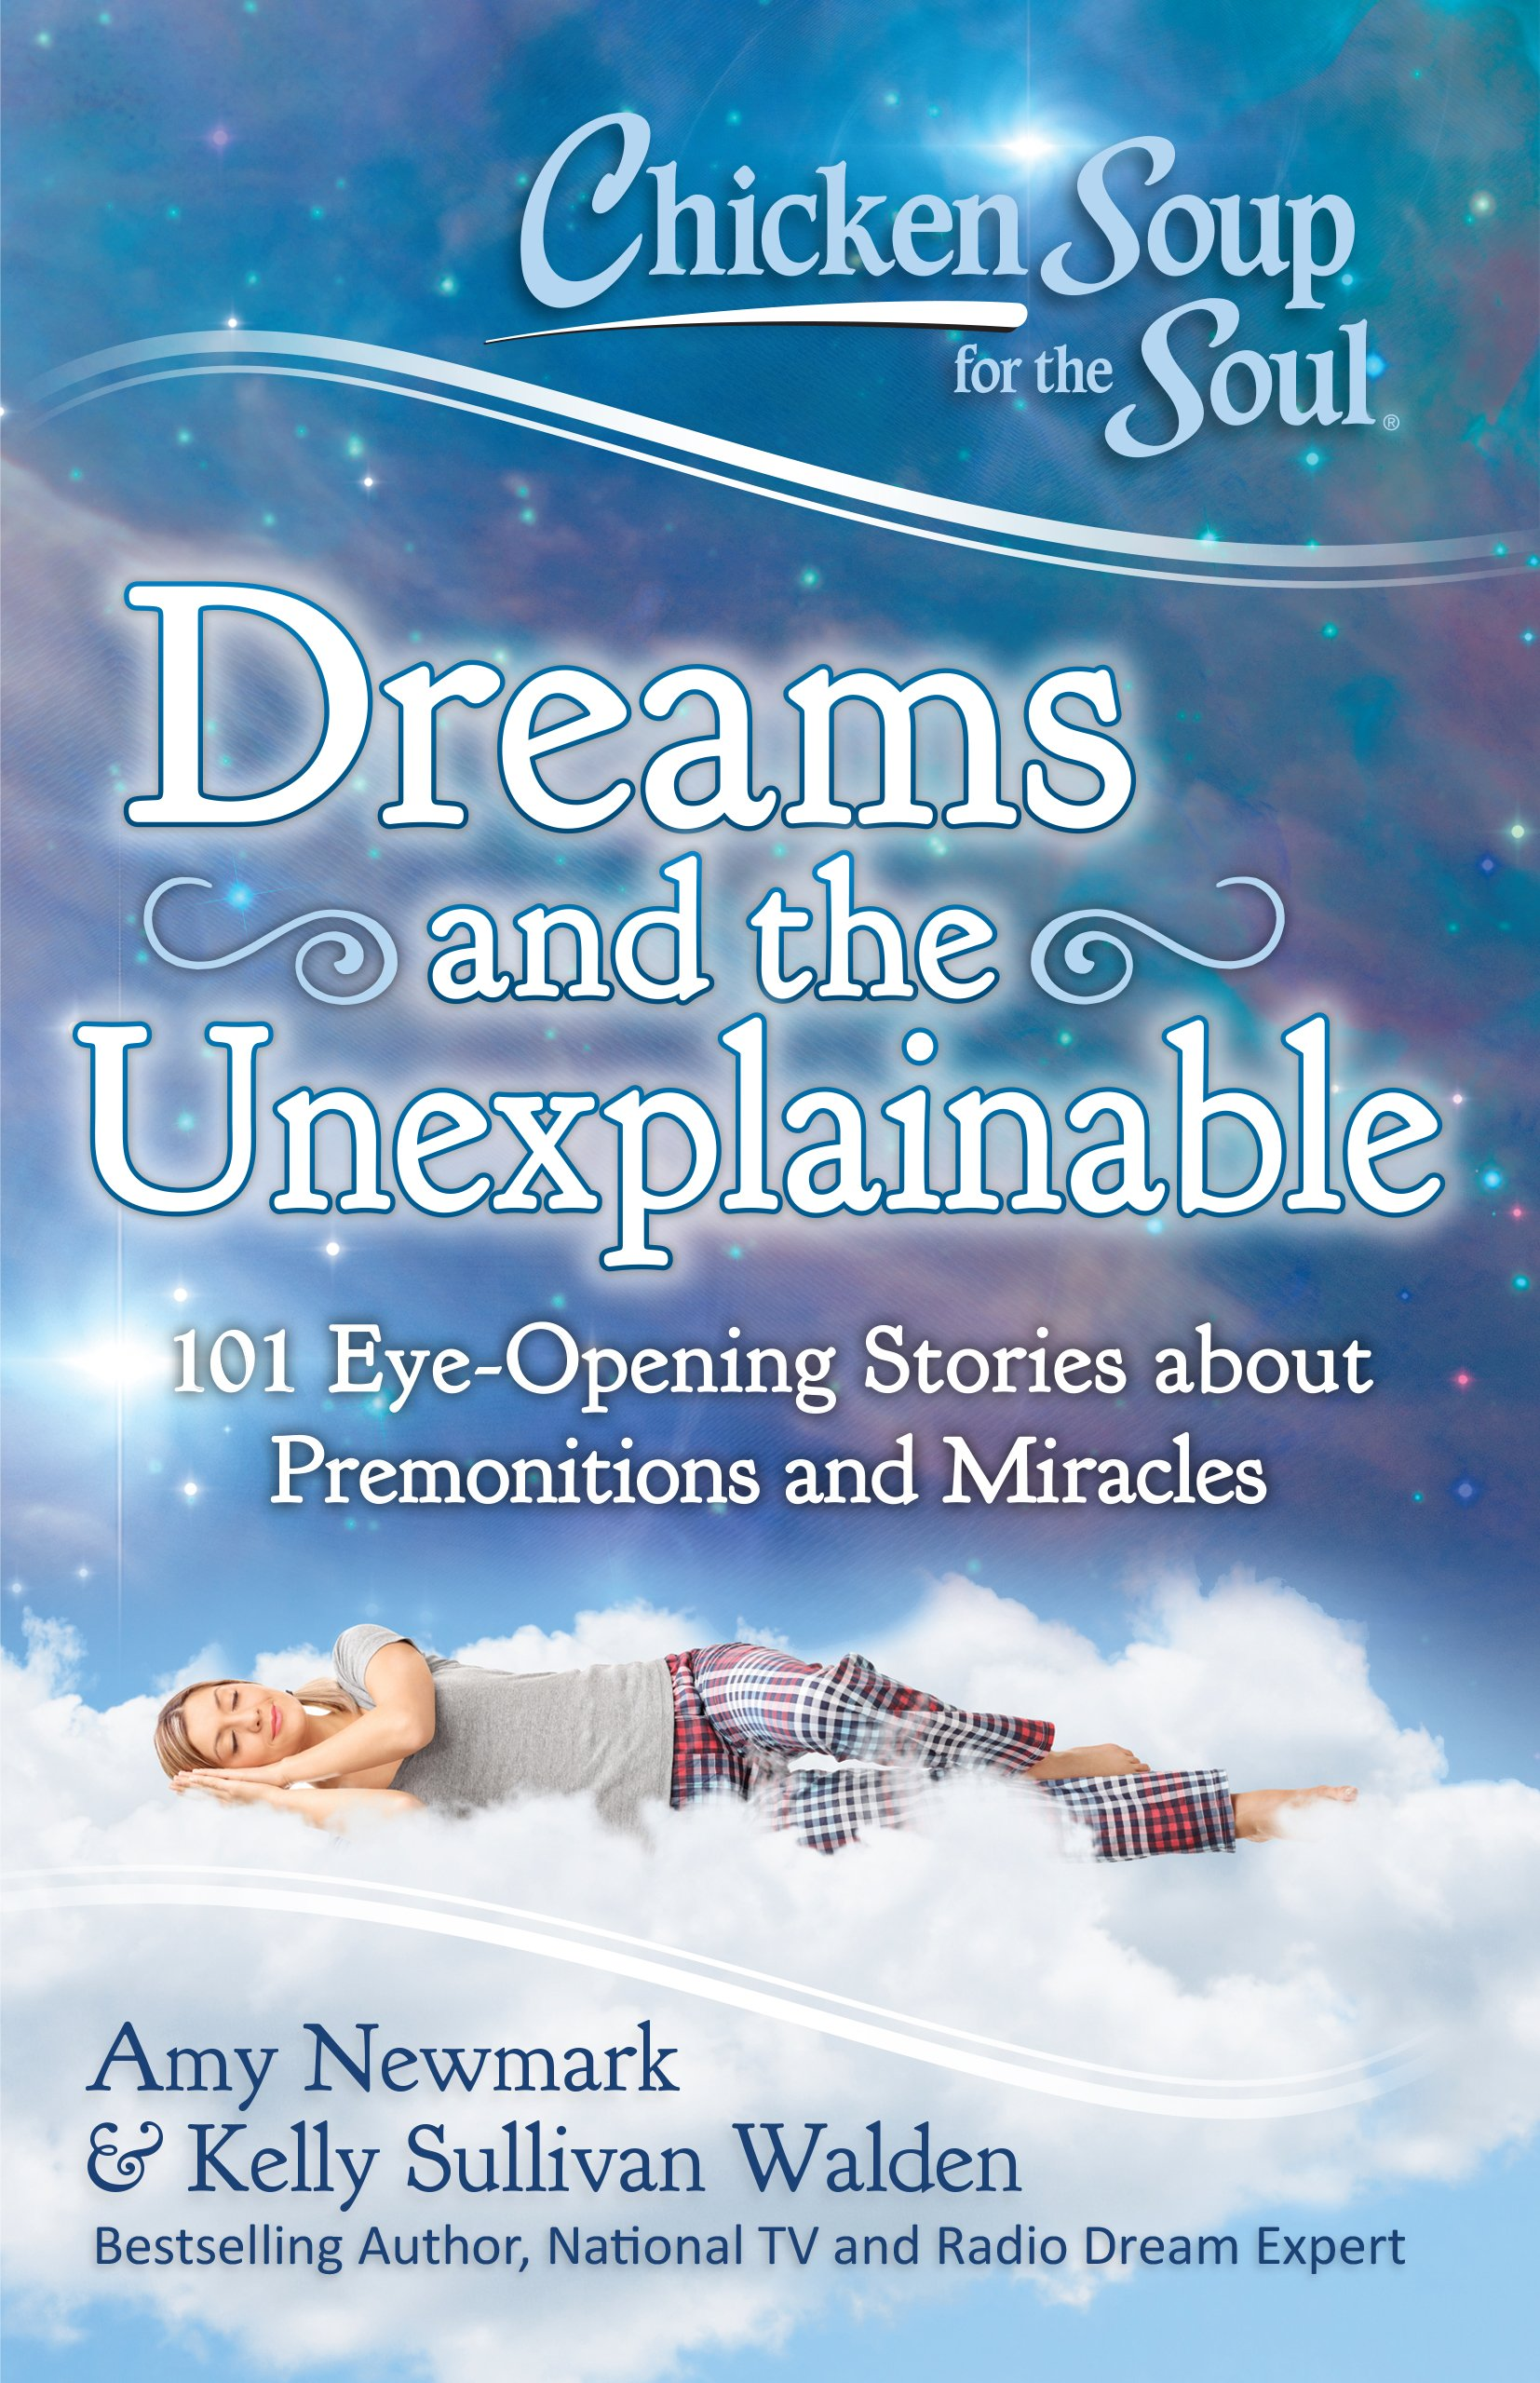 Amazon.com: Chicken Soup for the Soul: Dreams and the Unexplainable ...